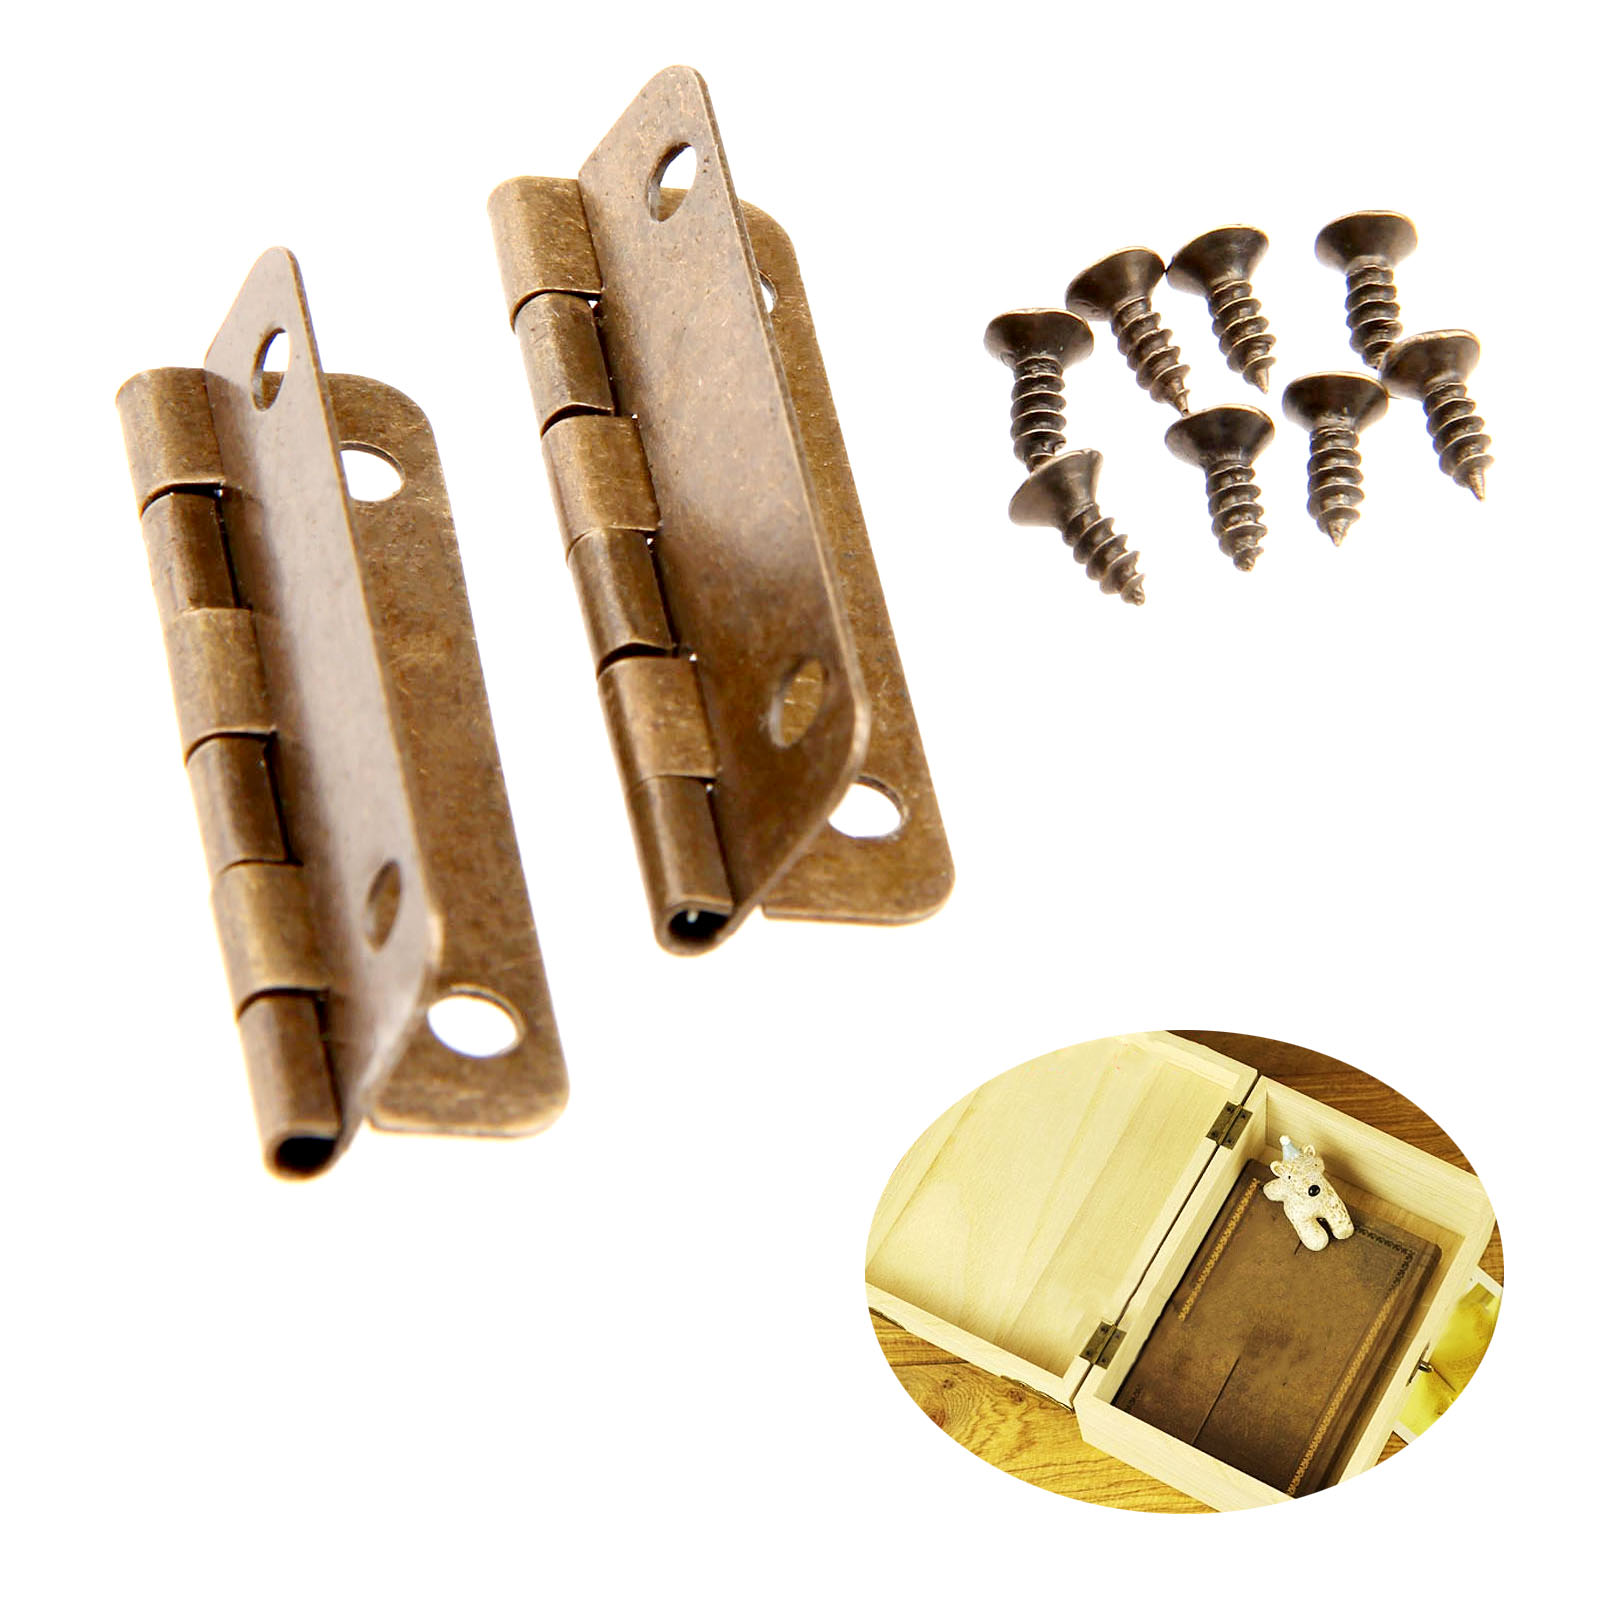 2Pcs Antique Bronze Cabinet Hinges Furniture Accessories Drawer Hinges for Jewelry Boxes Furniture Fittings for Cabinet 38x19mm(China (Mainland))